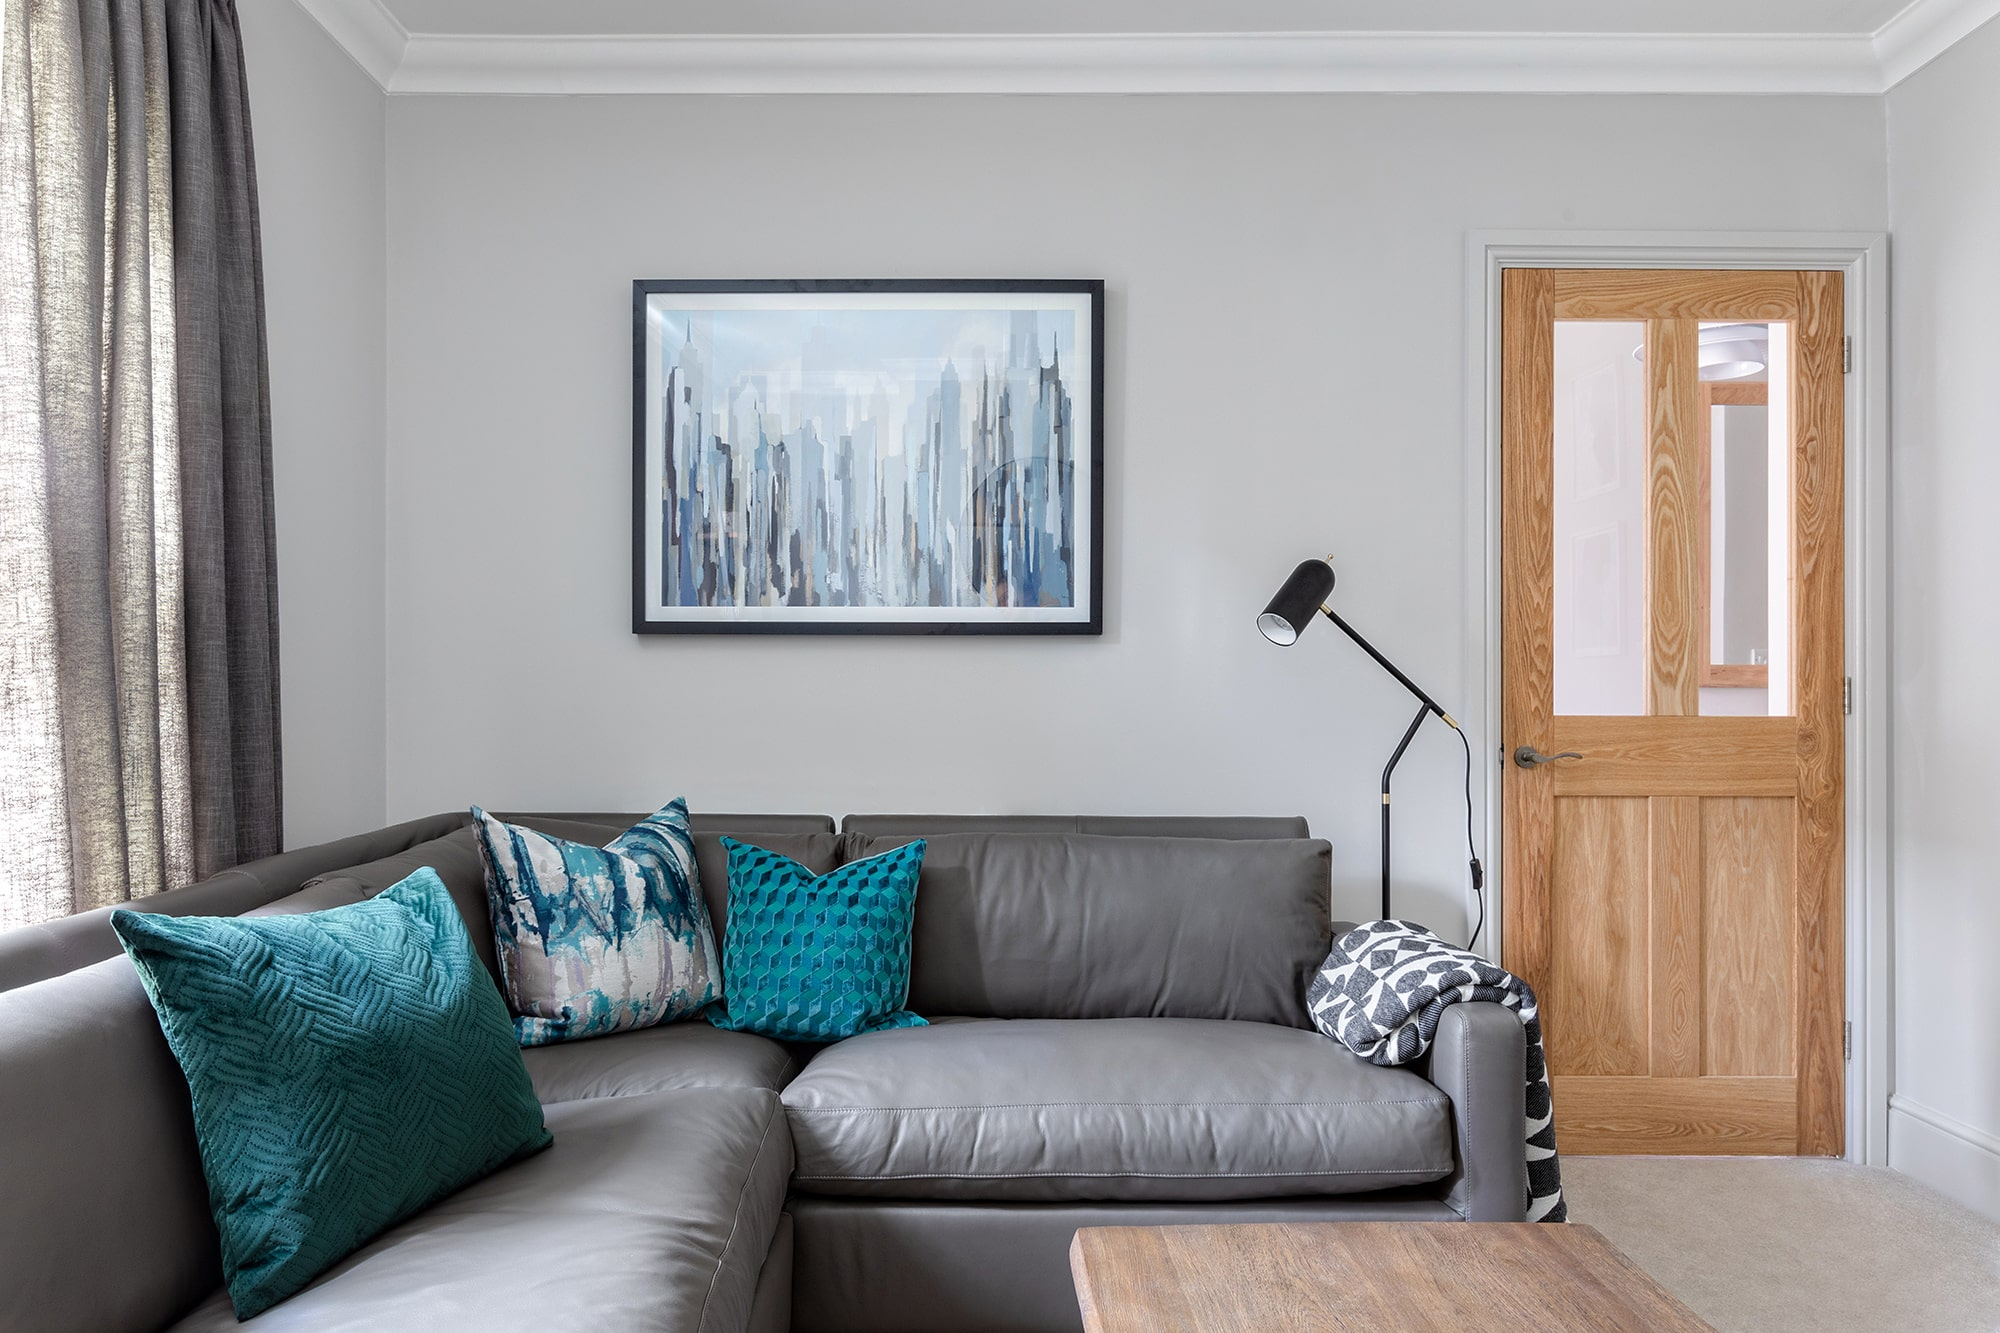 Interior design photo: living room with grey walls, abstract blue art; grey sofa with teal cushions; black standing lamp